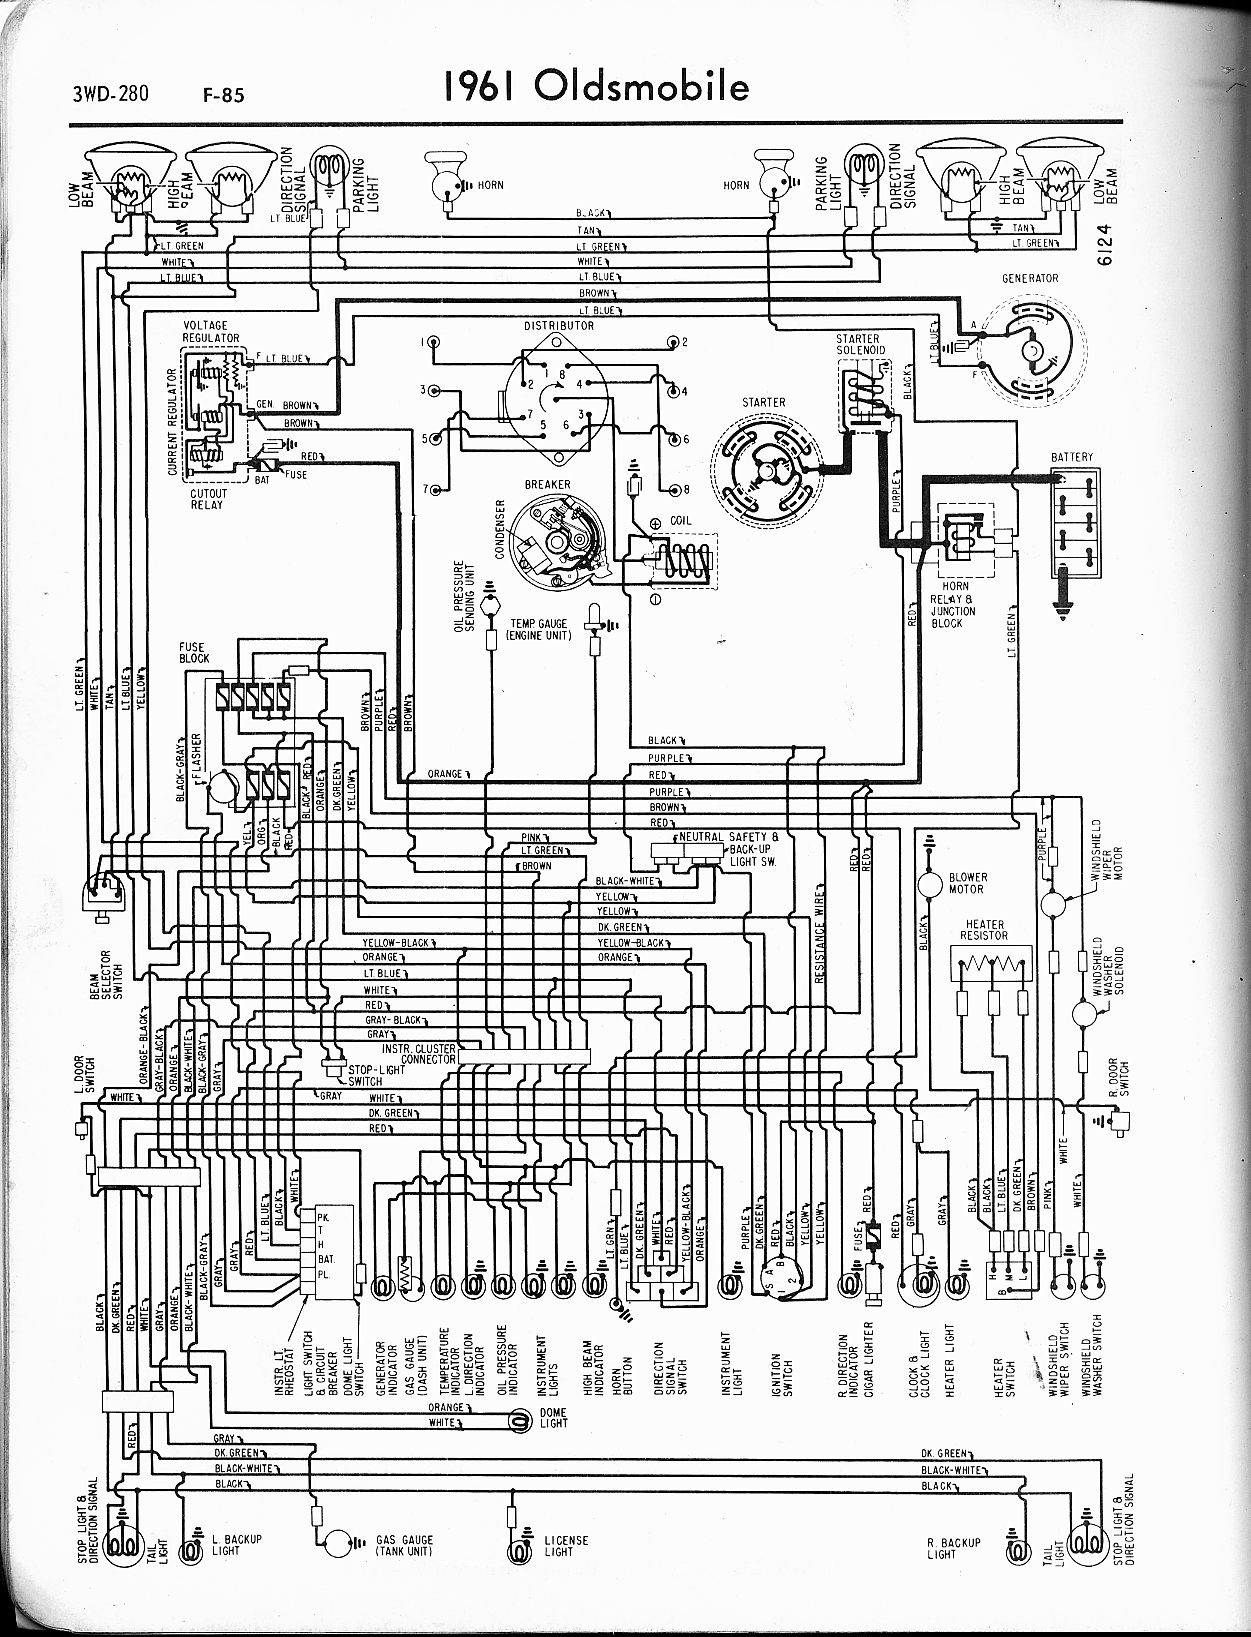 MWire5765 280 oldsmobile wiring diagram oldsmobile wiring diagrams instruction Basic Turn Signal Wiring Diagram at crackthecode.co